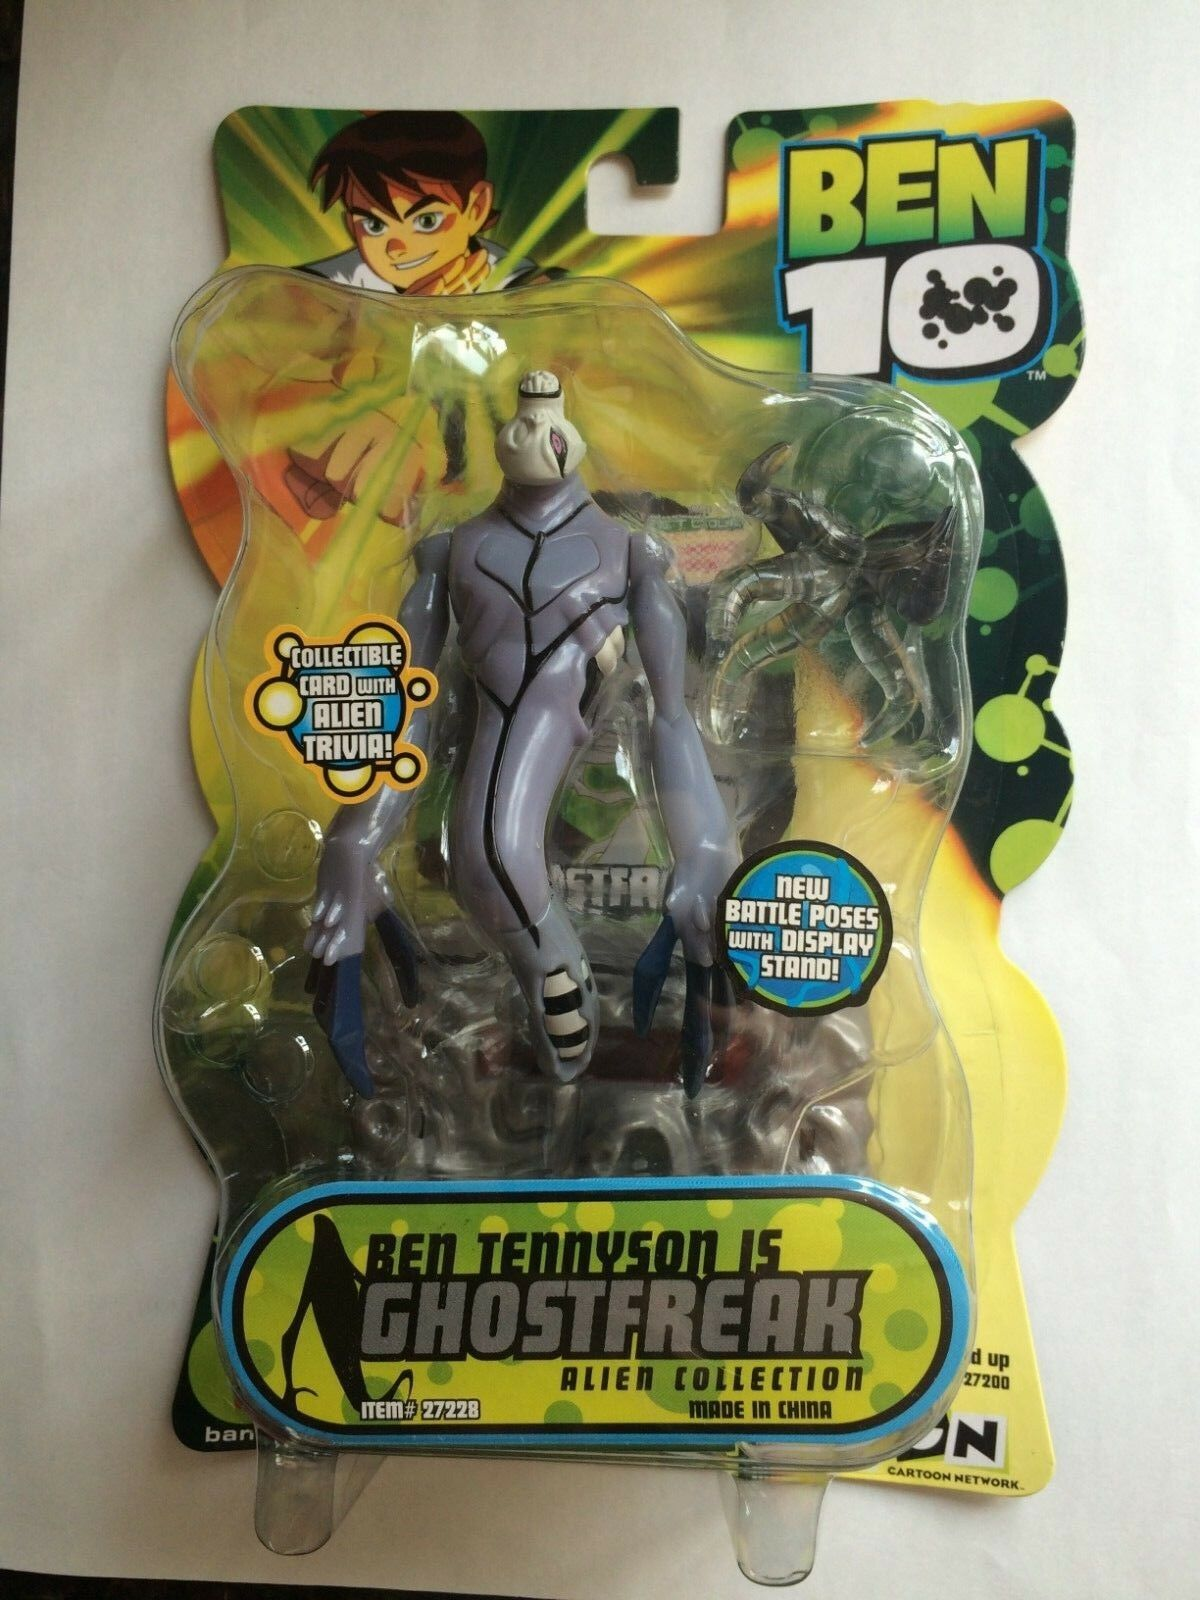 Bandai Cartoon Network BEN 10 ALIEN COLLECTION COLLECTION COLLECTION GHOSTFREAK  MOC  U.S. seller 1ea355